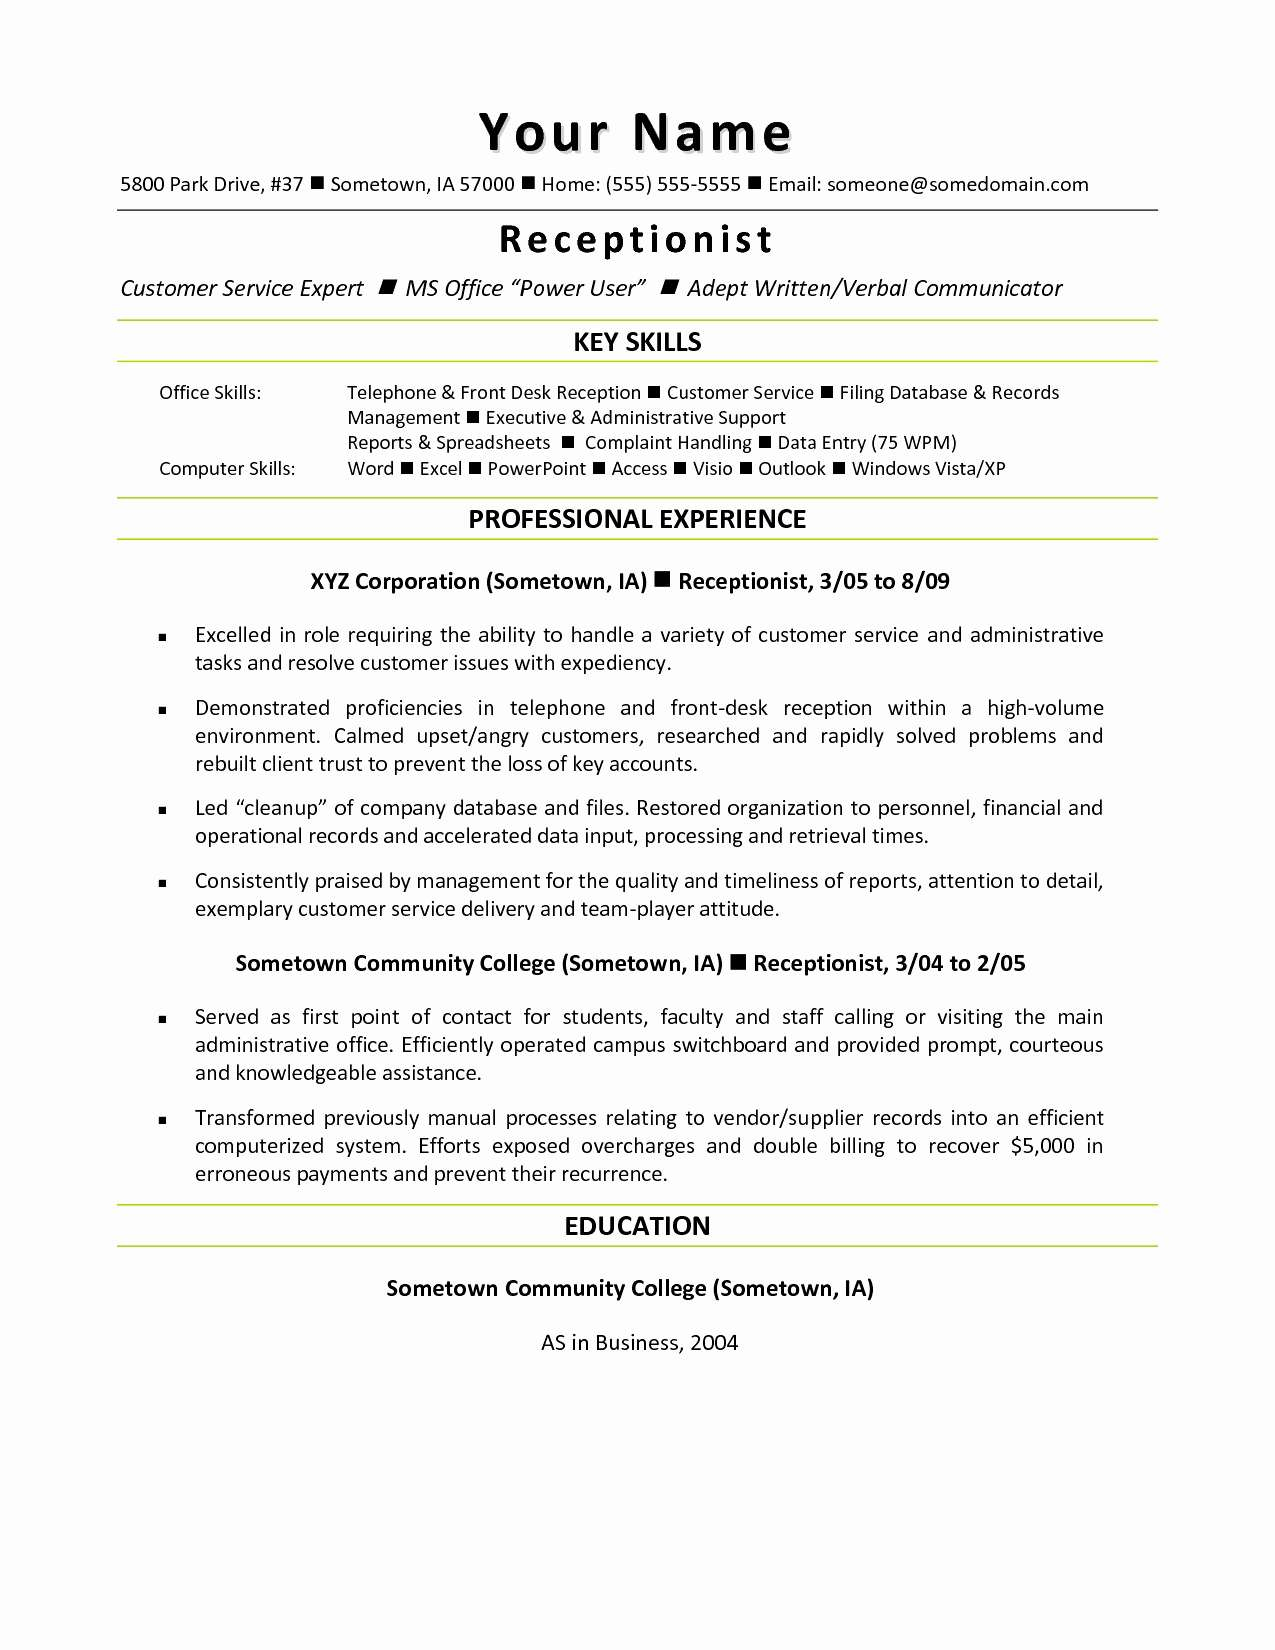 Cover Letter Template for Promotion - Resume for Promotion within Same Pany Examples New Resume Mail